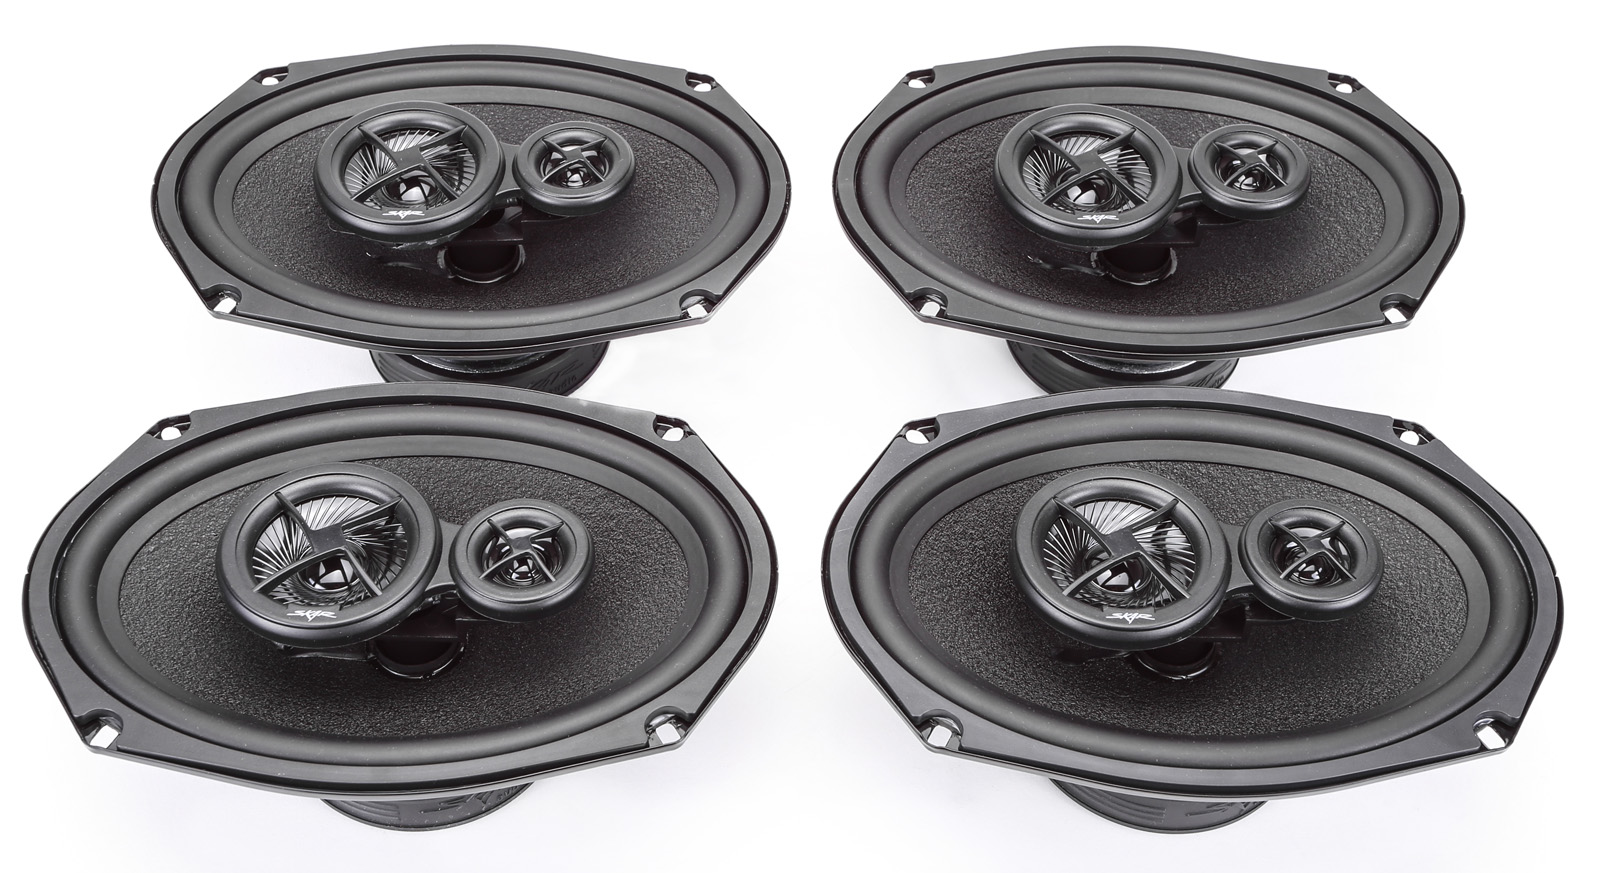 2014-2015 Jeep Cherokee (Sport Models Only) Complete Premium Factory Replacement Speaker Package by Skar Audio by Skar Audio